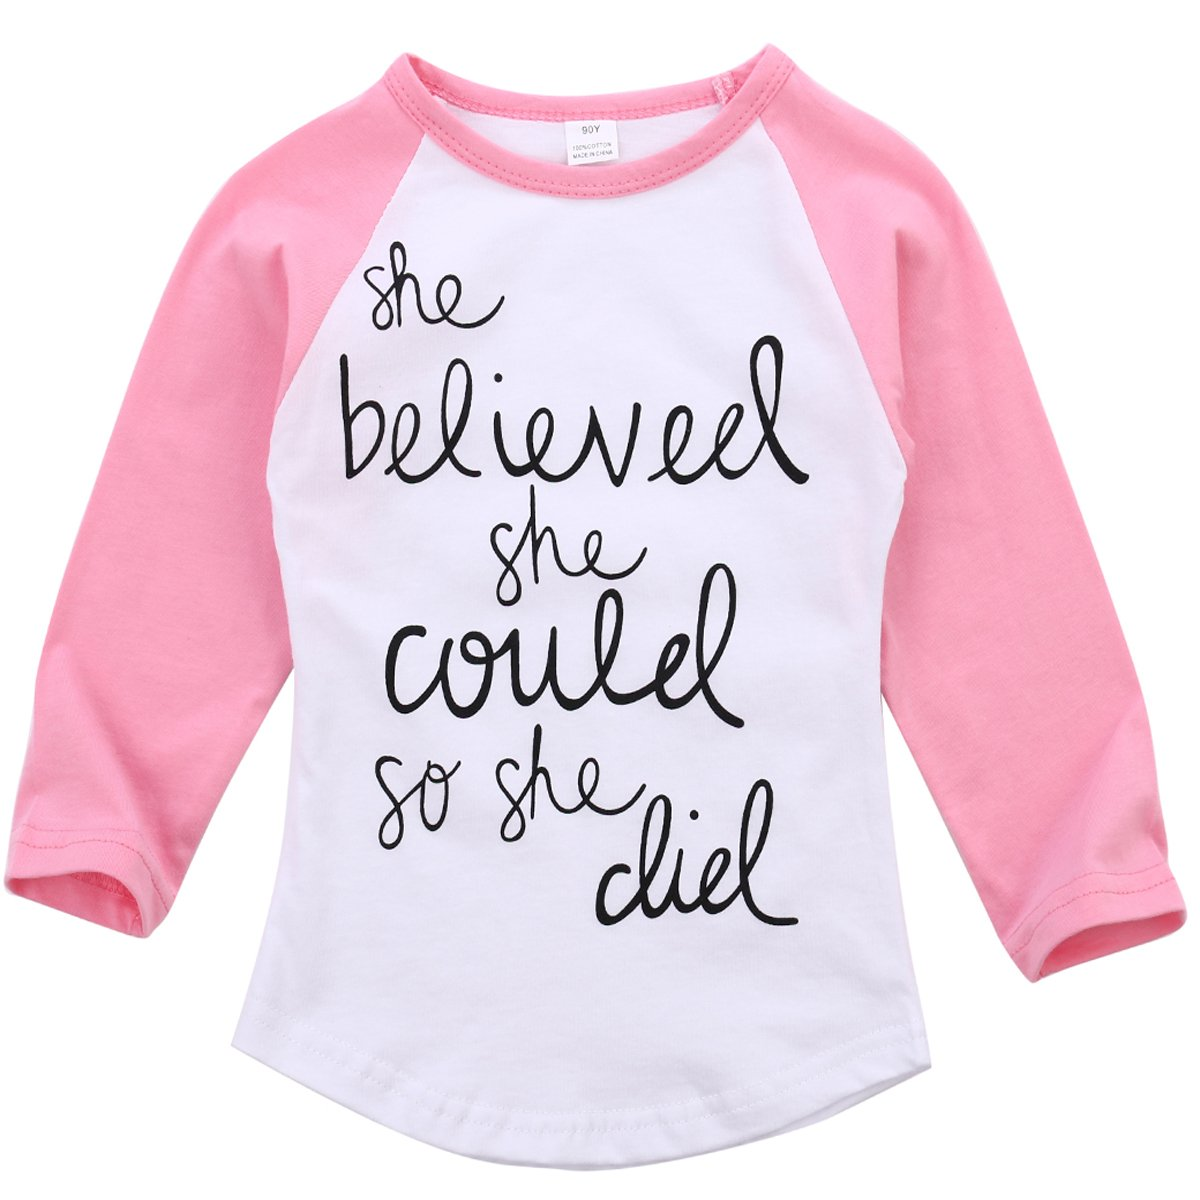 Fashion Baby Girls Letter Printing Long Sleeve T-Shirt Clothes Pullover Top